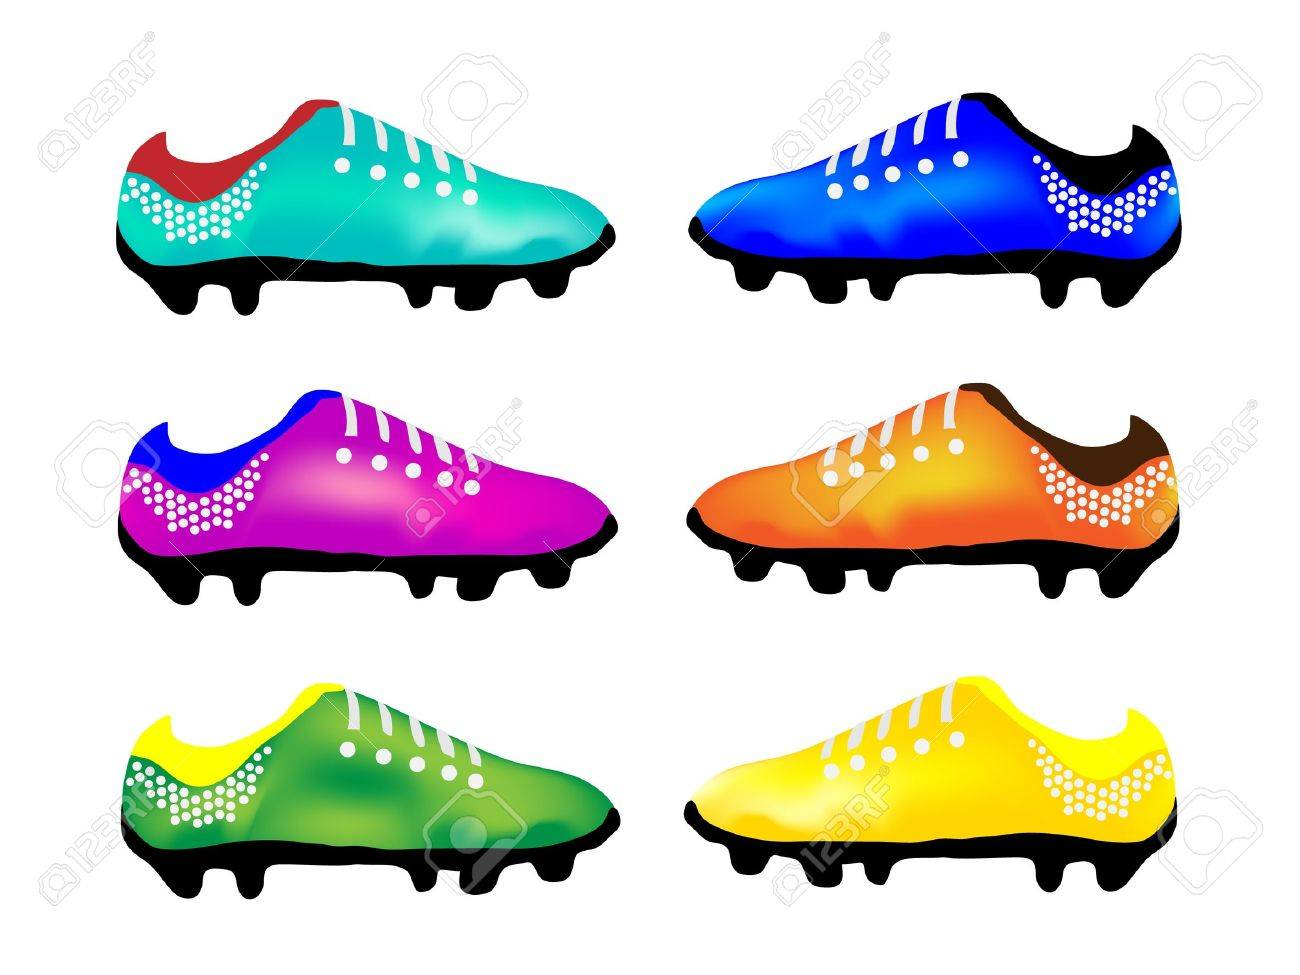 Light Blue, Purple, Green, Blue, Orange and Yellow Color of Studded Shoes or Soccer Shoes Stock Vector - 17288177